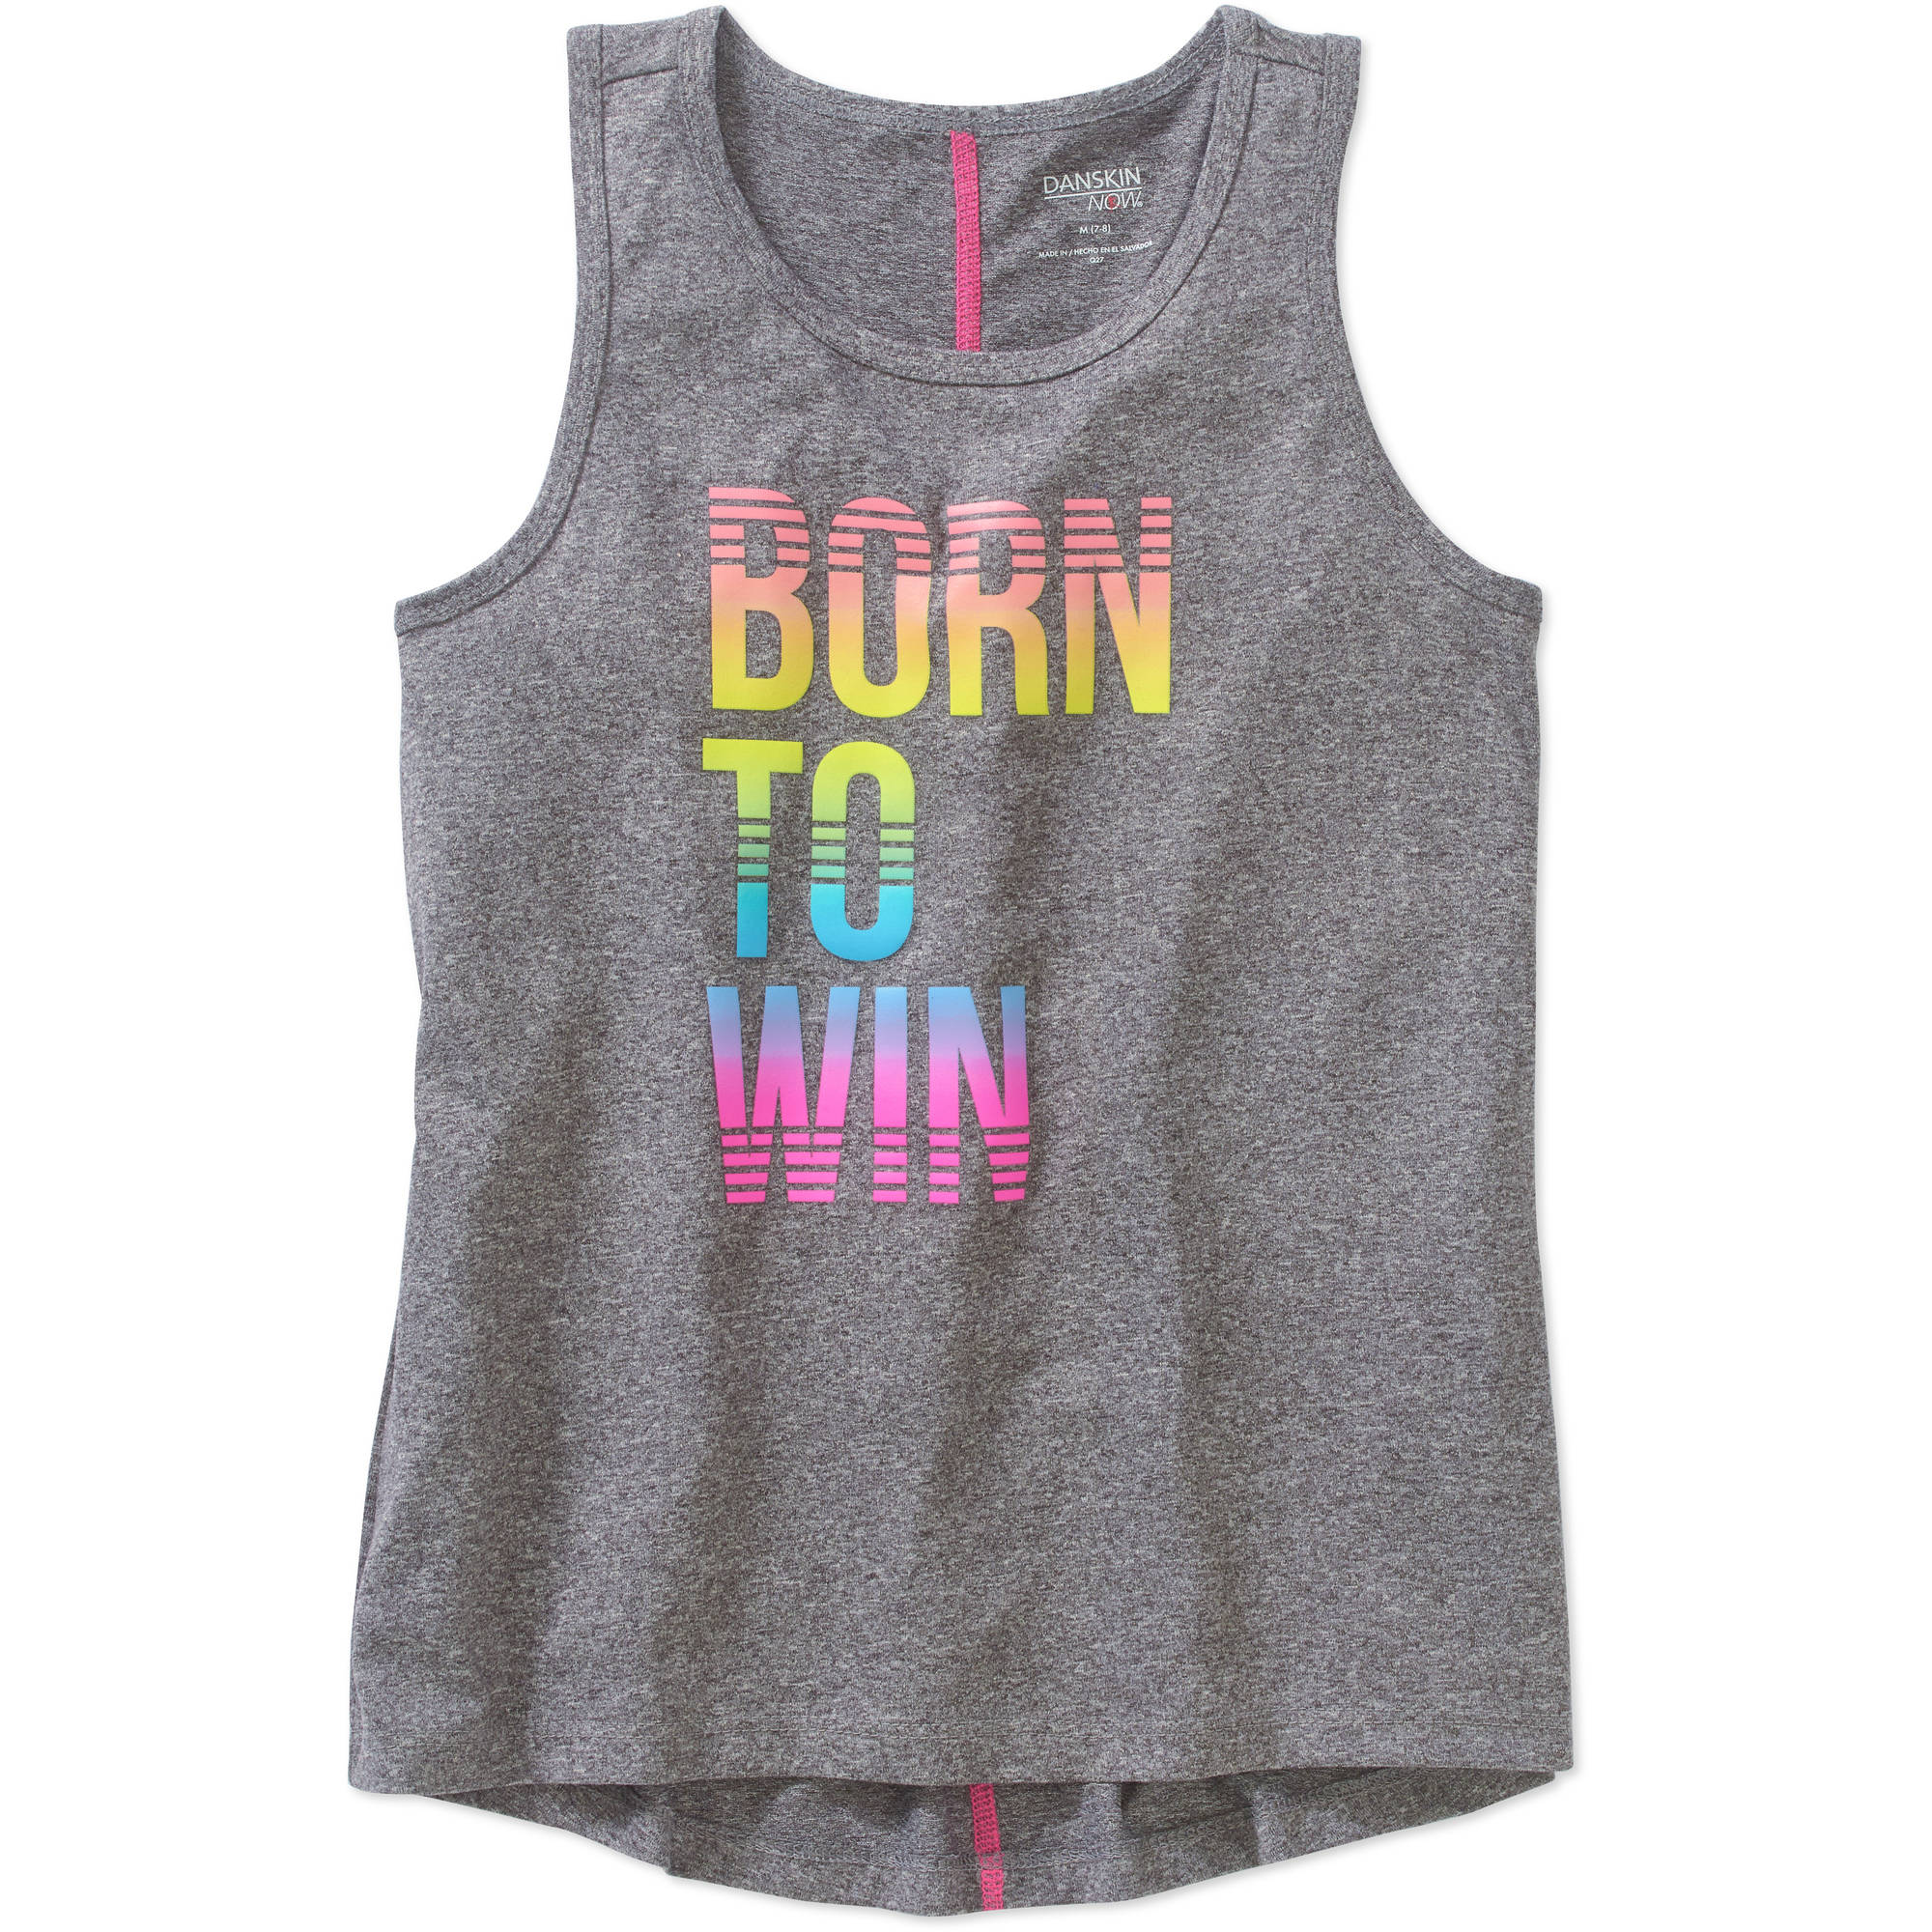 Girls' Clothing - Walmart.com